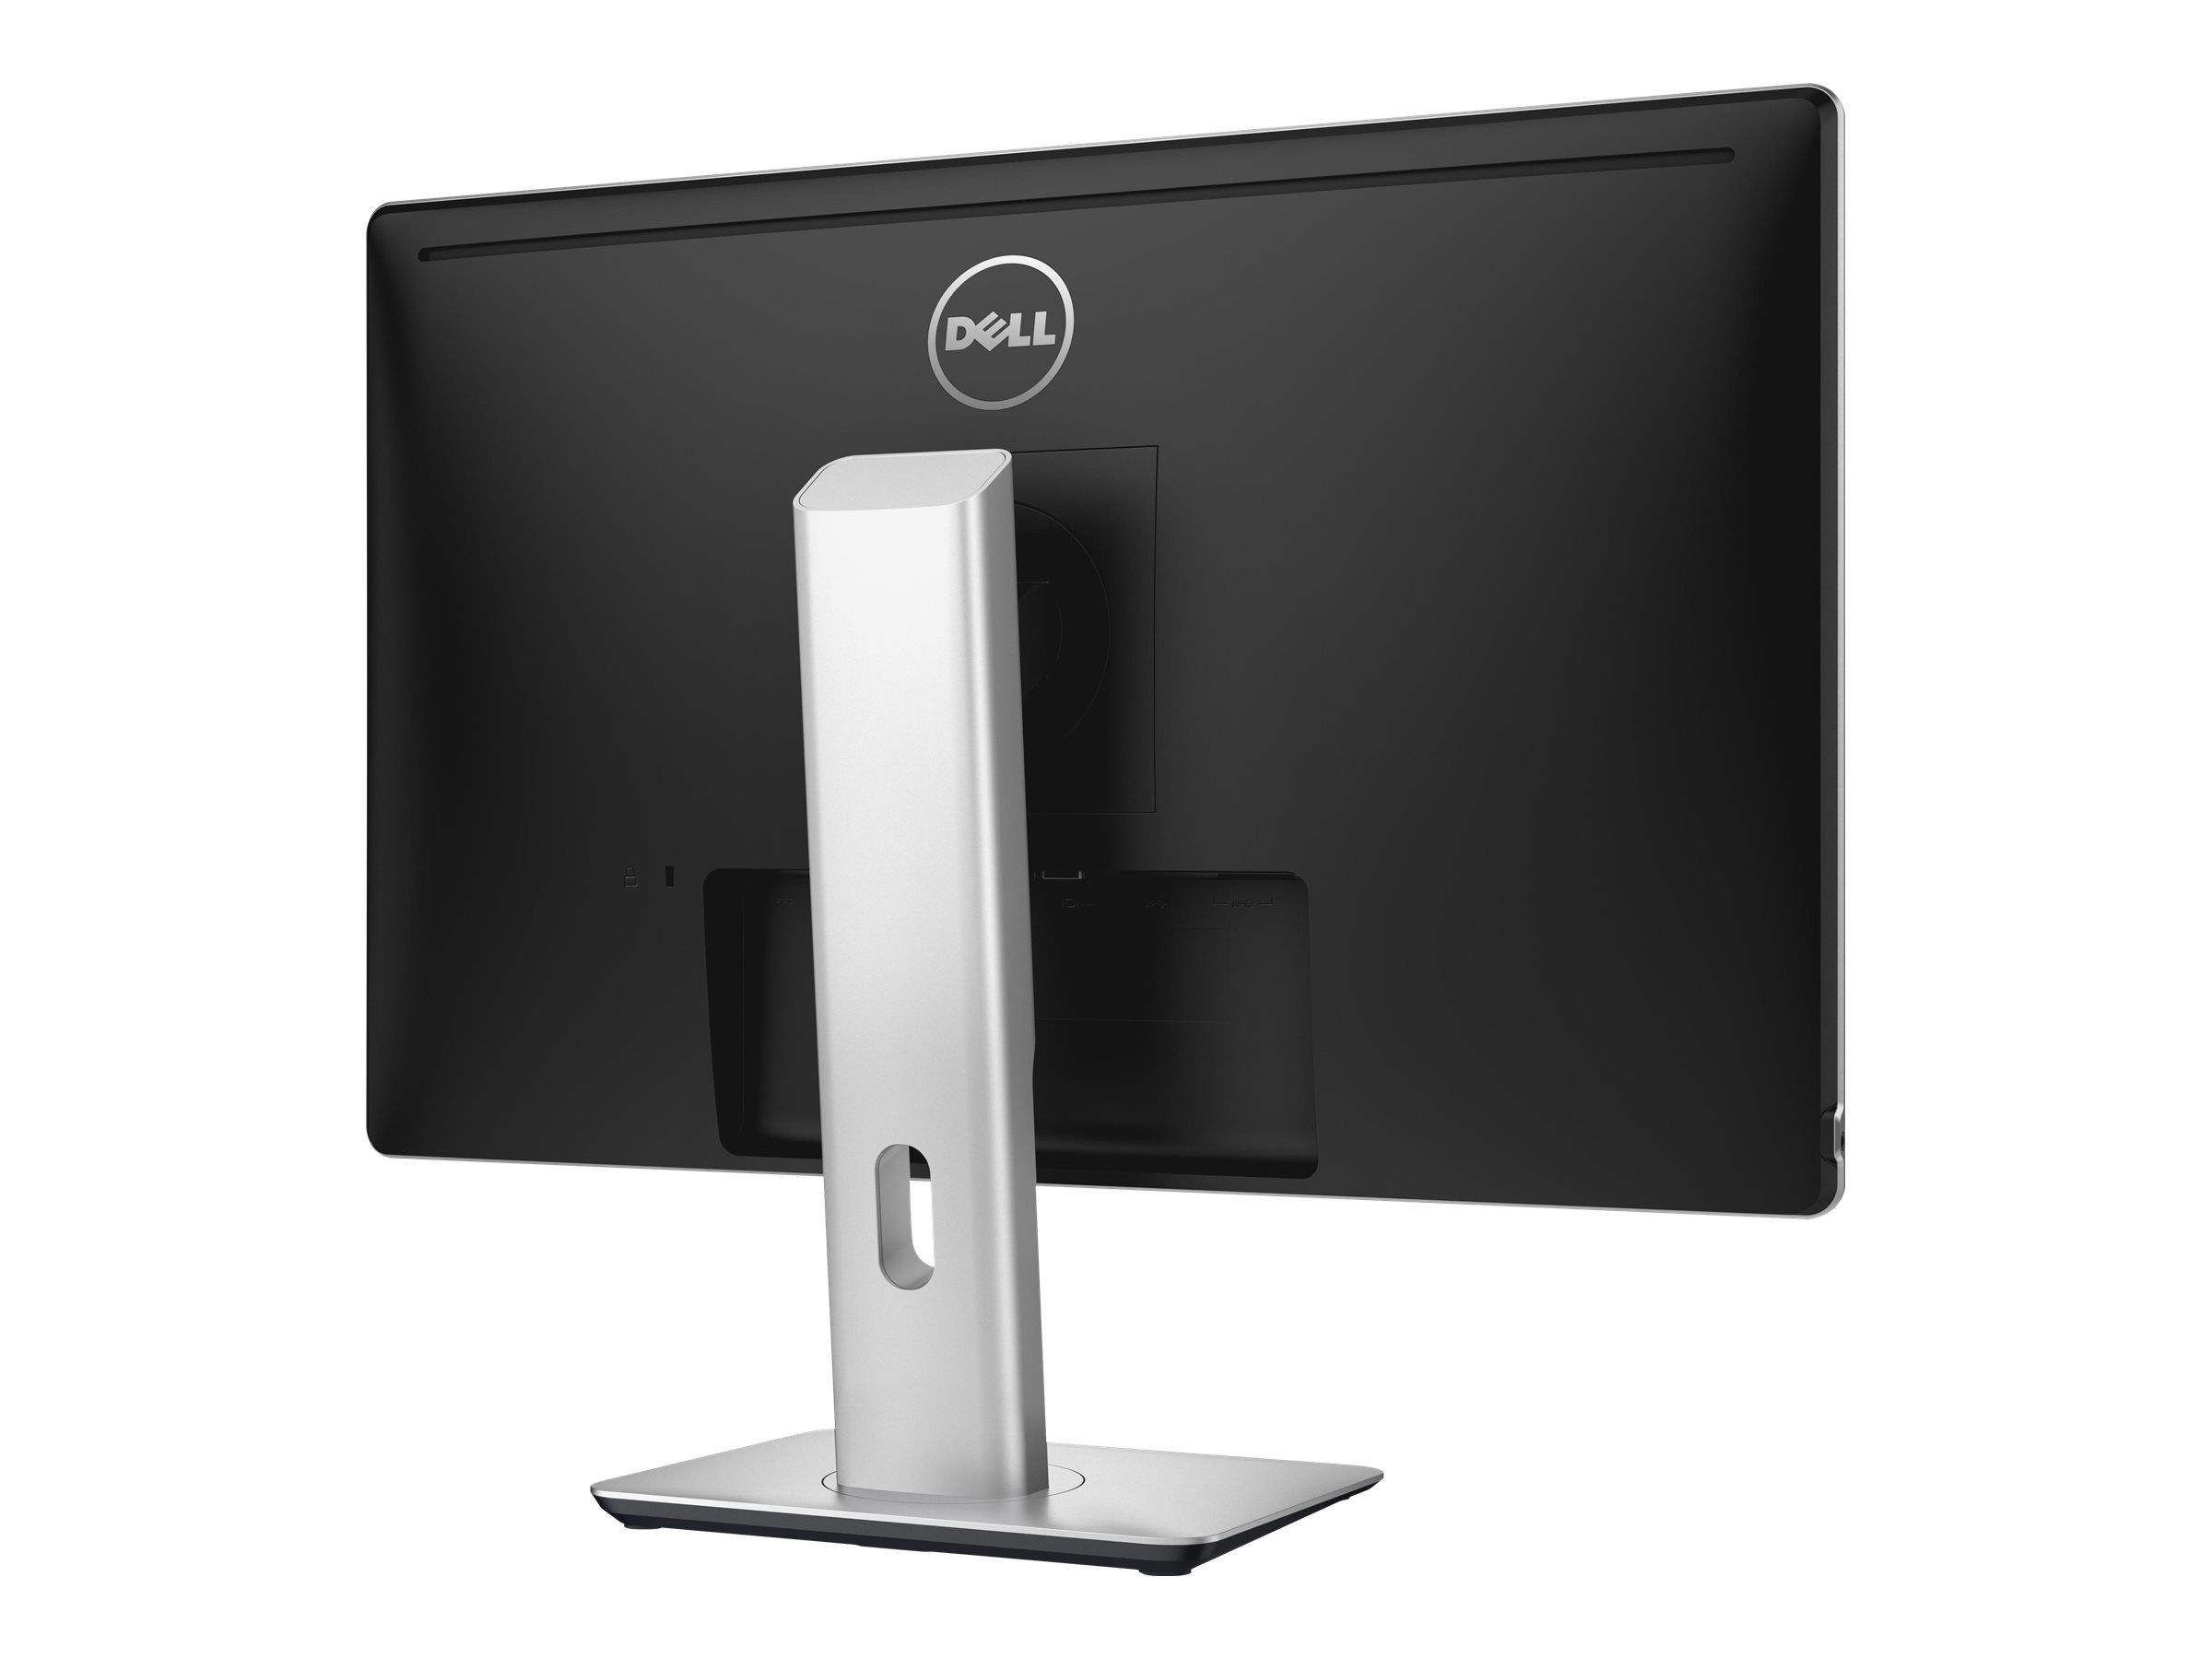 Dell Ultrasharp UZ2315H 23-Inch Screen LED-Lit Full HD Monitor with Webcam and Speakers by Dell (Image #8)